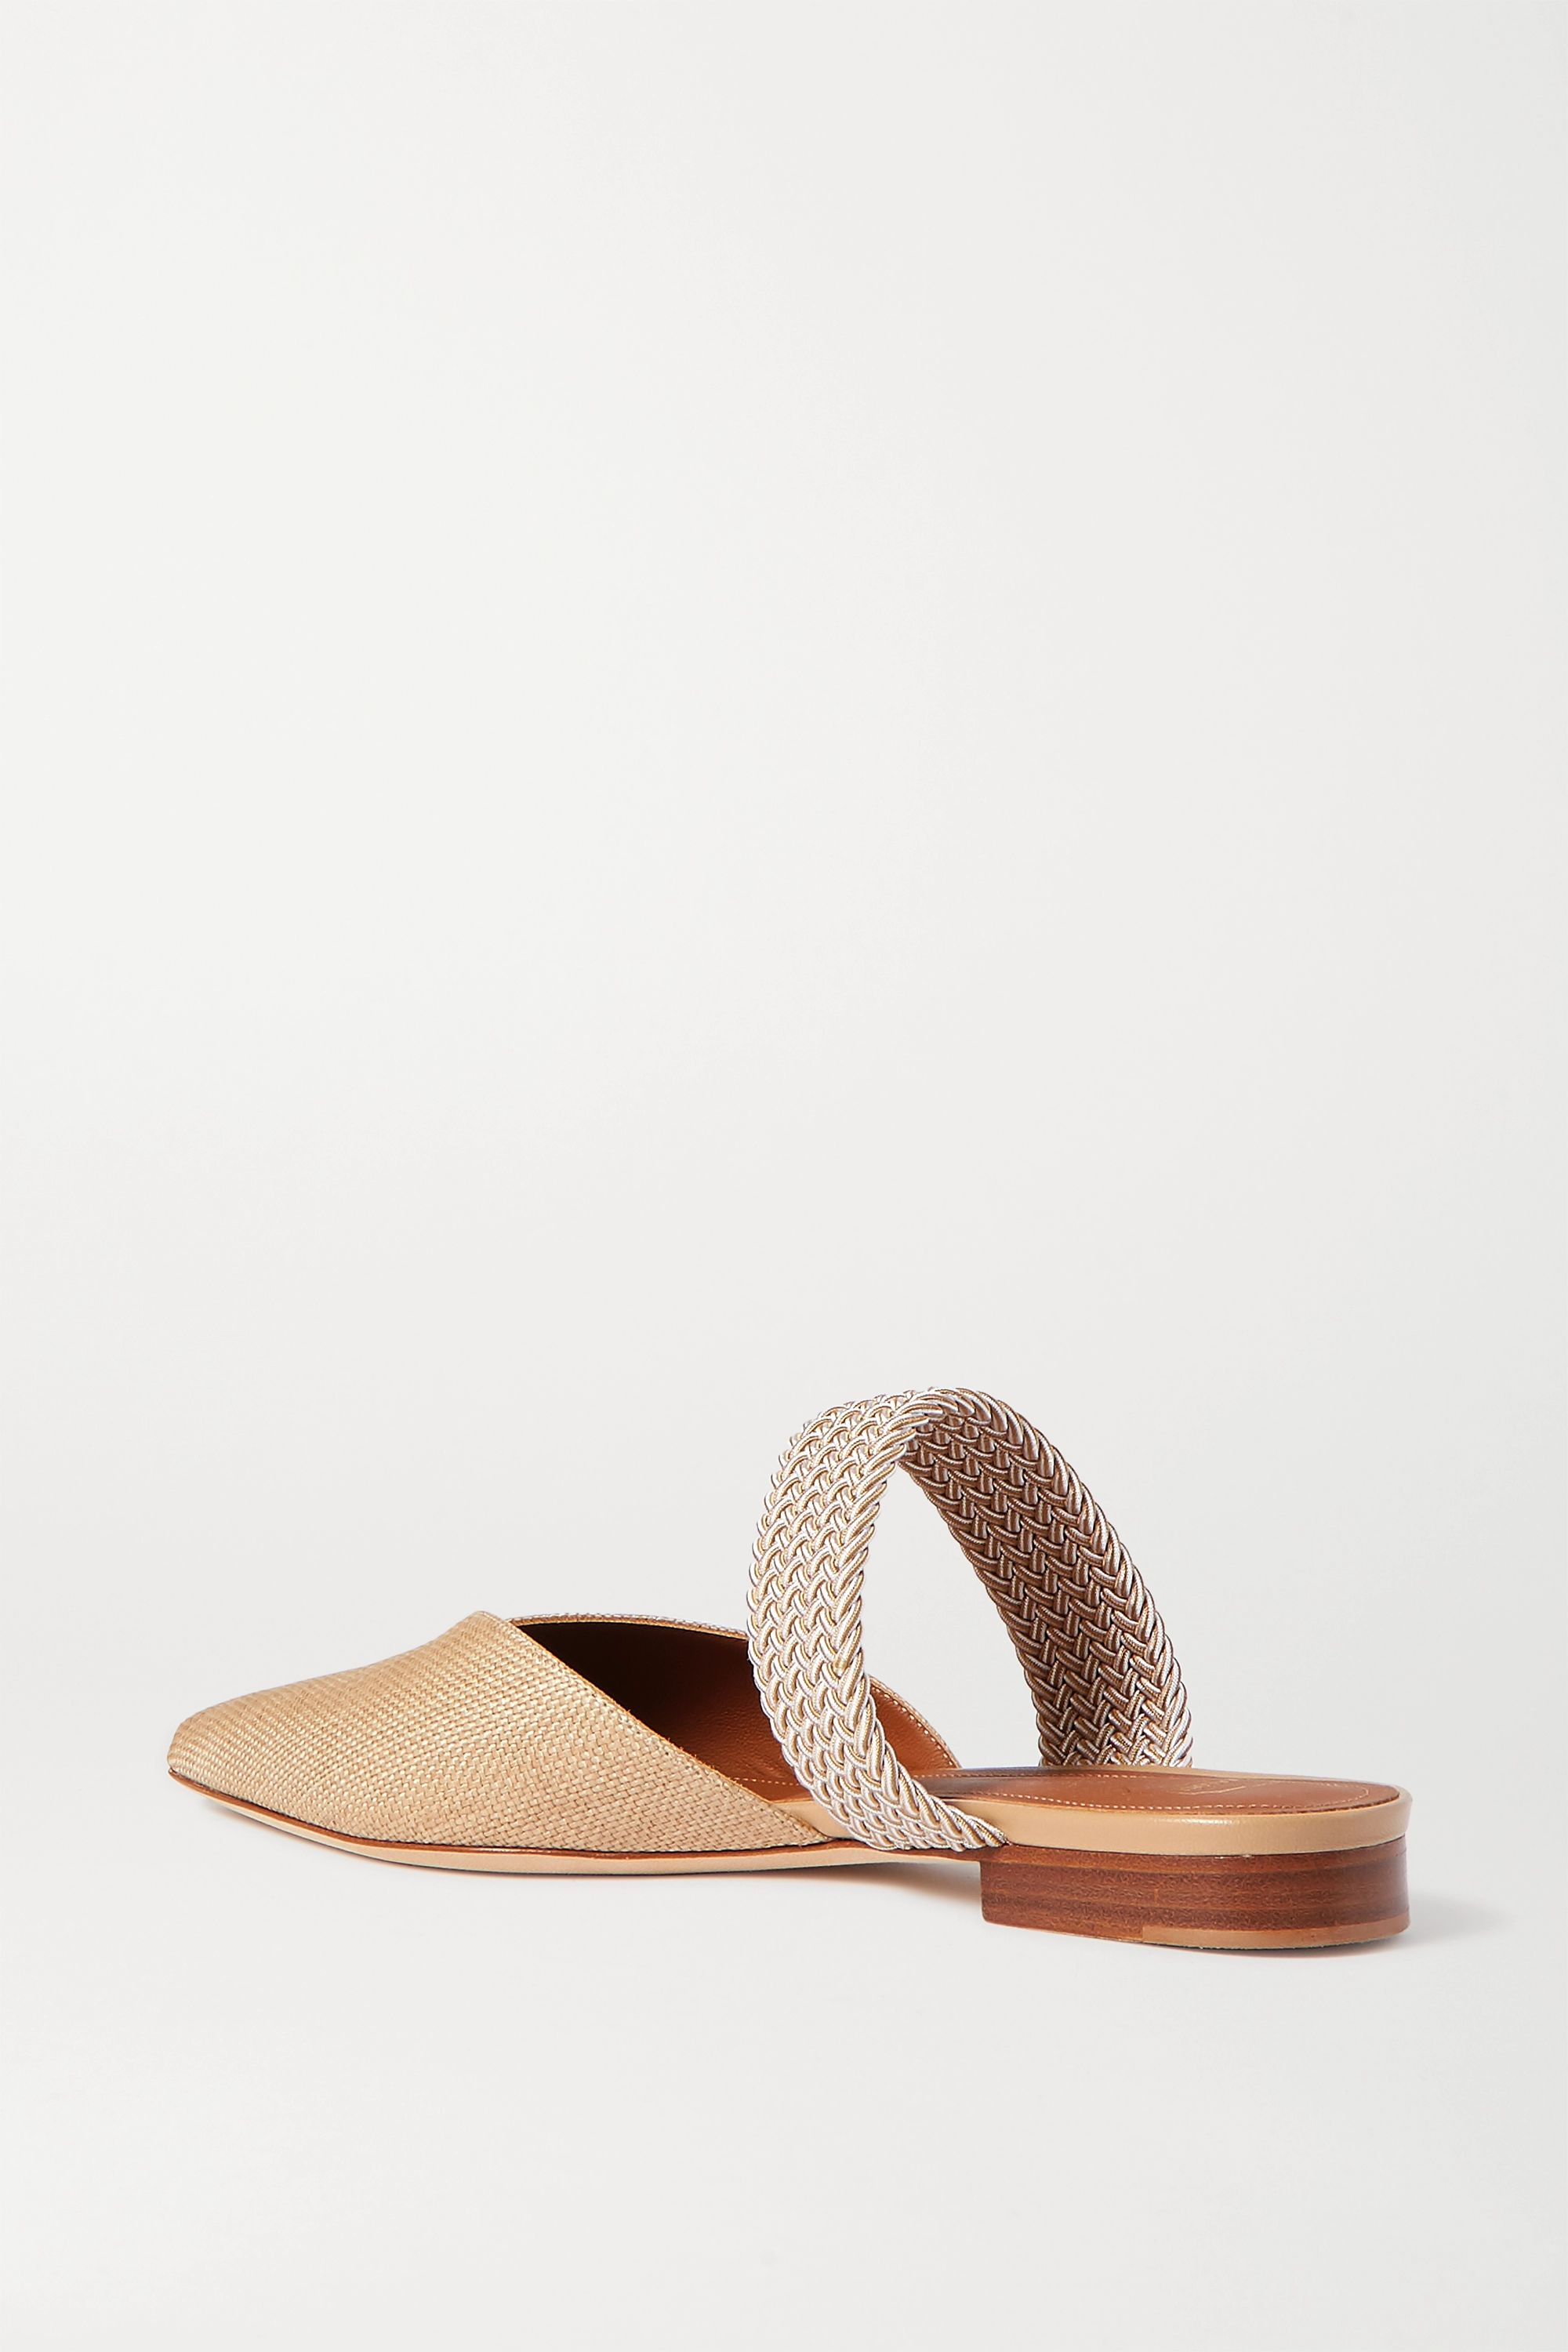 Malone Souliers Maisie cord-trimmed raffia point-toe flats